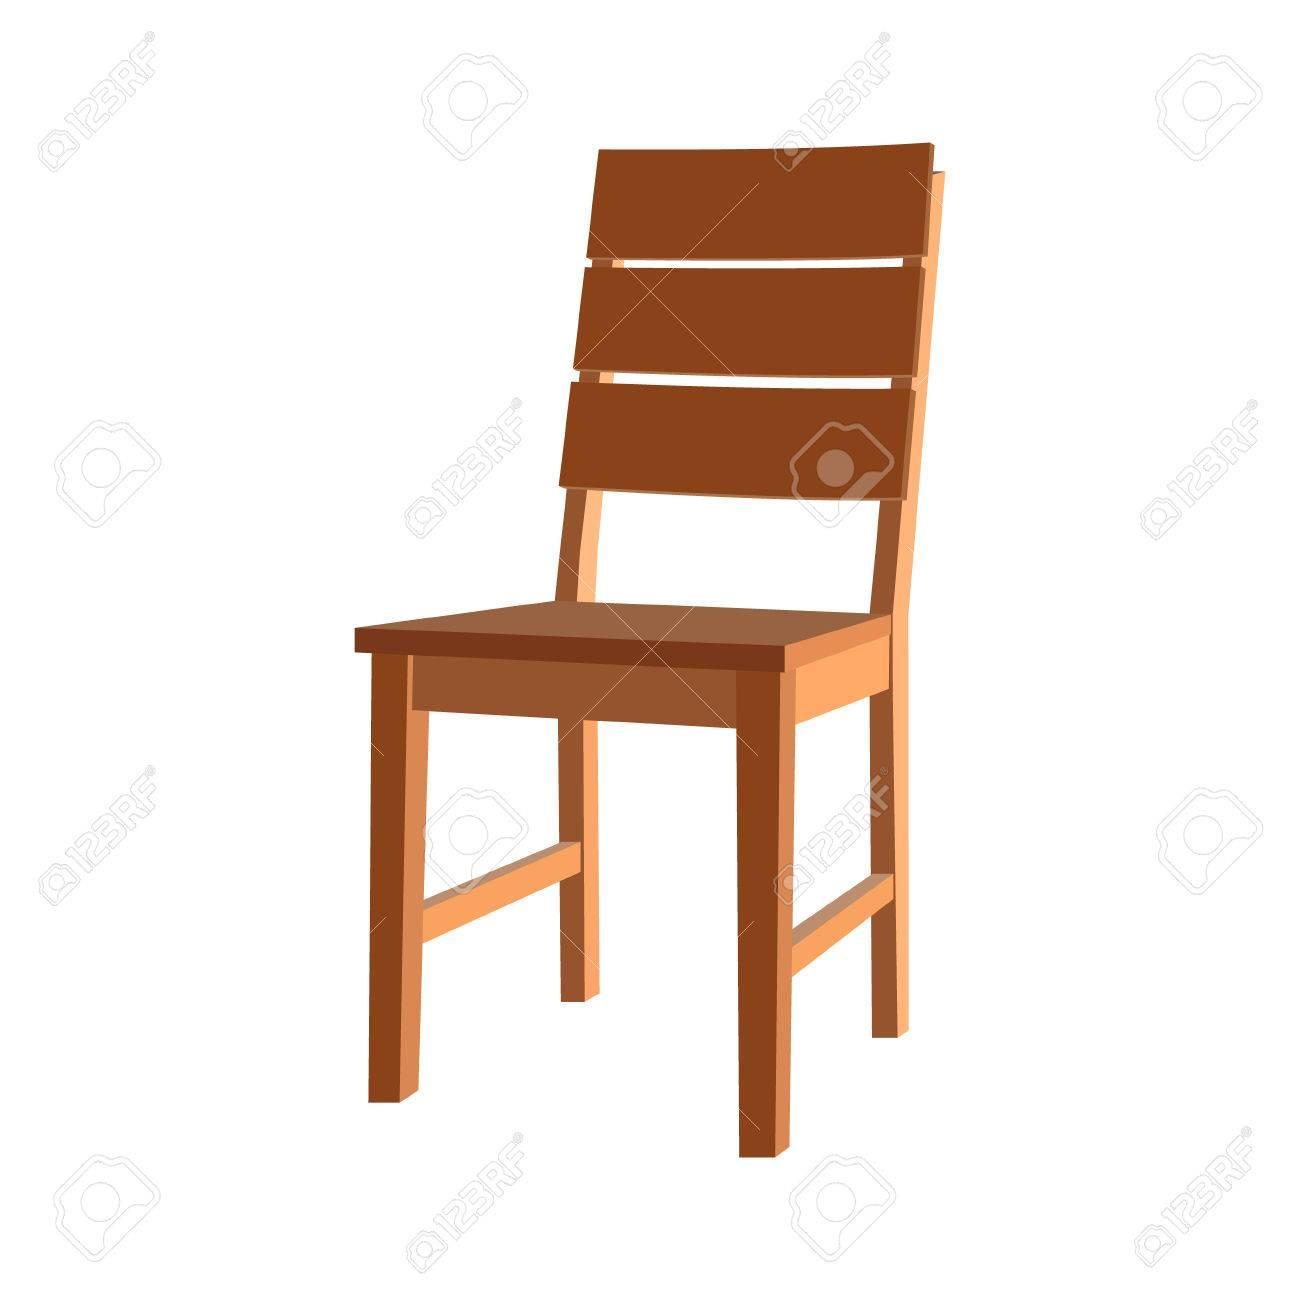 Table Chairs Cafe Conversation Premises Fu - Table And Chairs Logo - Free  Transparent PNG Clipart Images Download